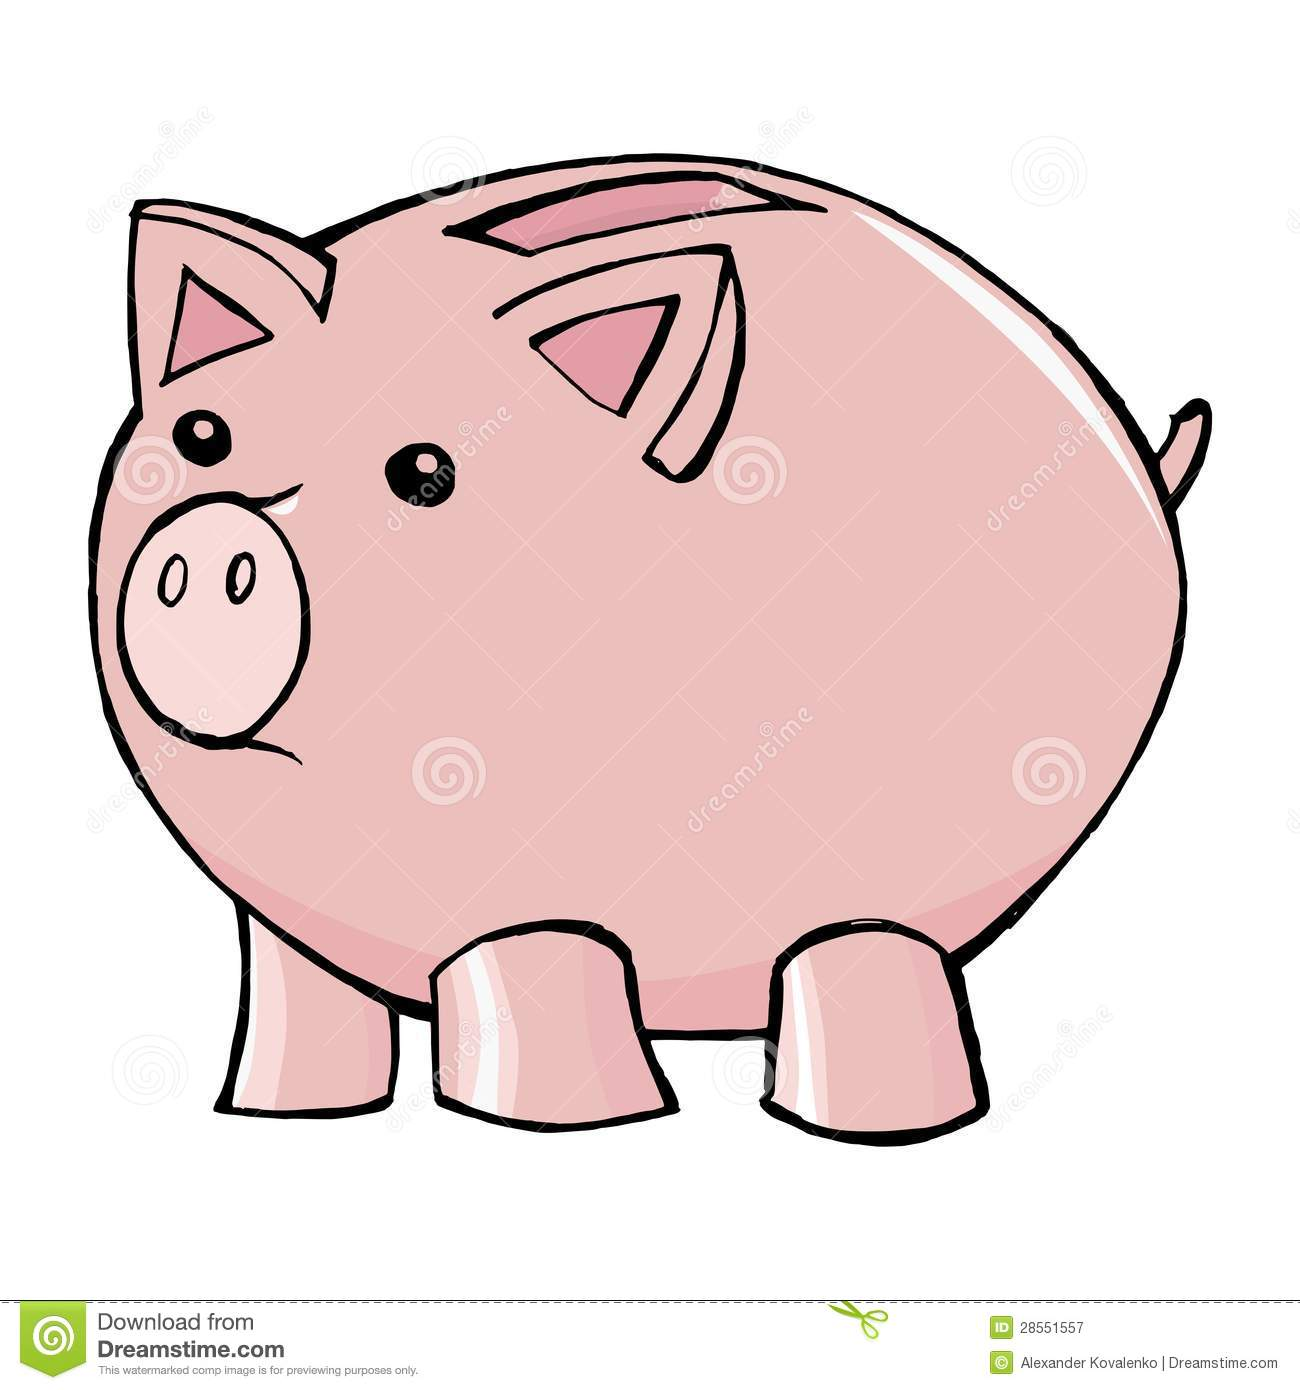 Piggy Bank Royalty Free Stock Photography - Image: 28551557